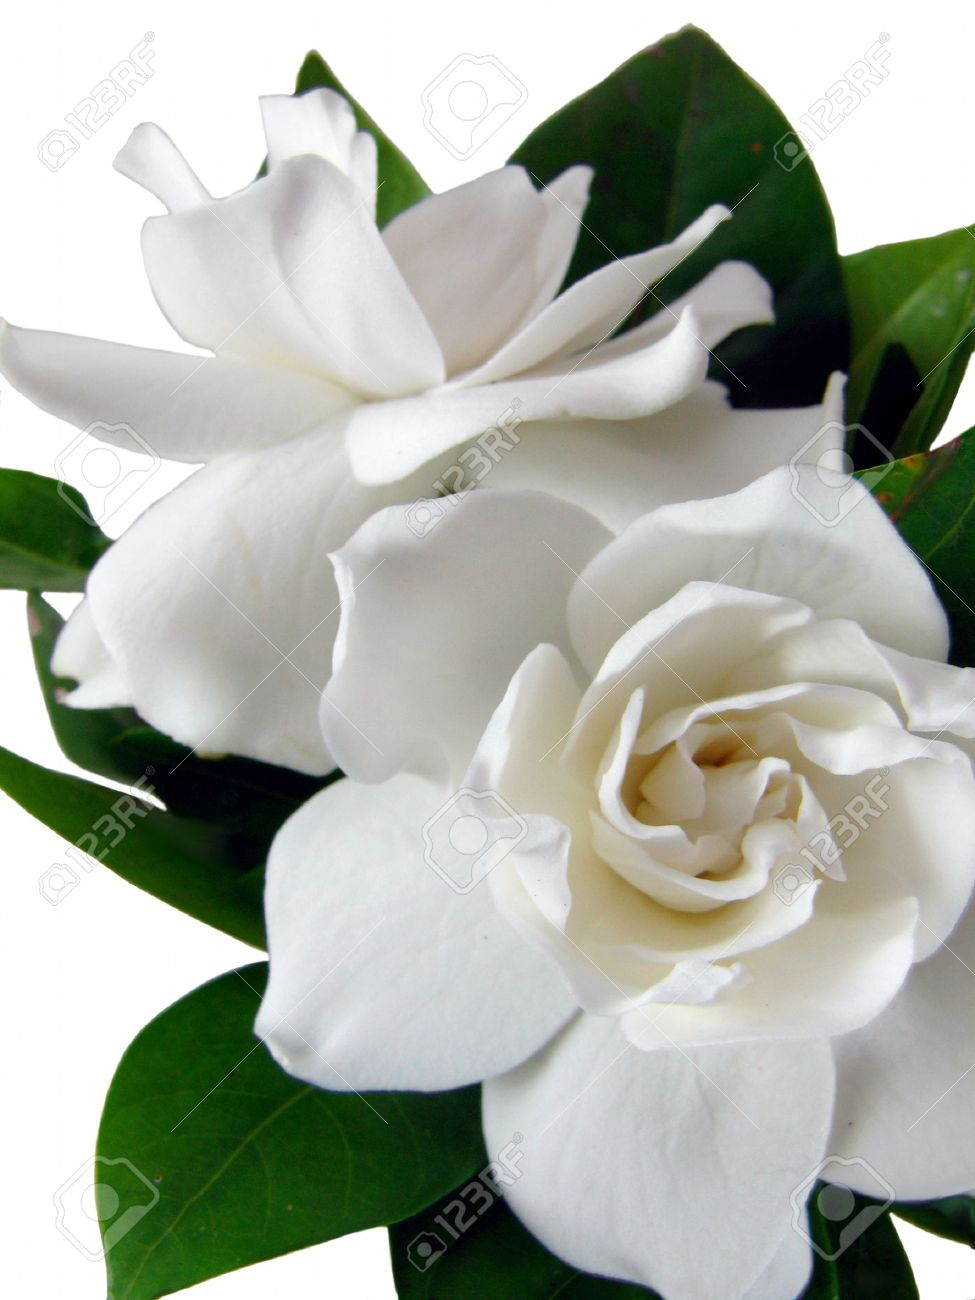 gardenia stock photos images. royalty free gardenia images and, Beautiful flower